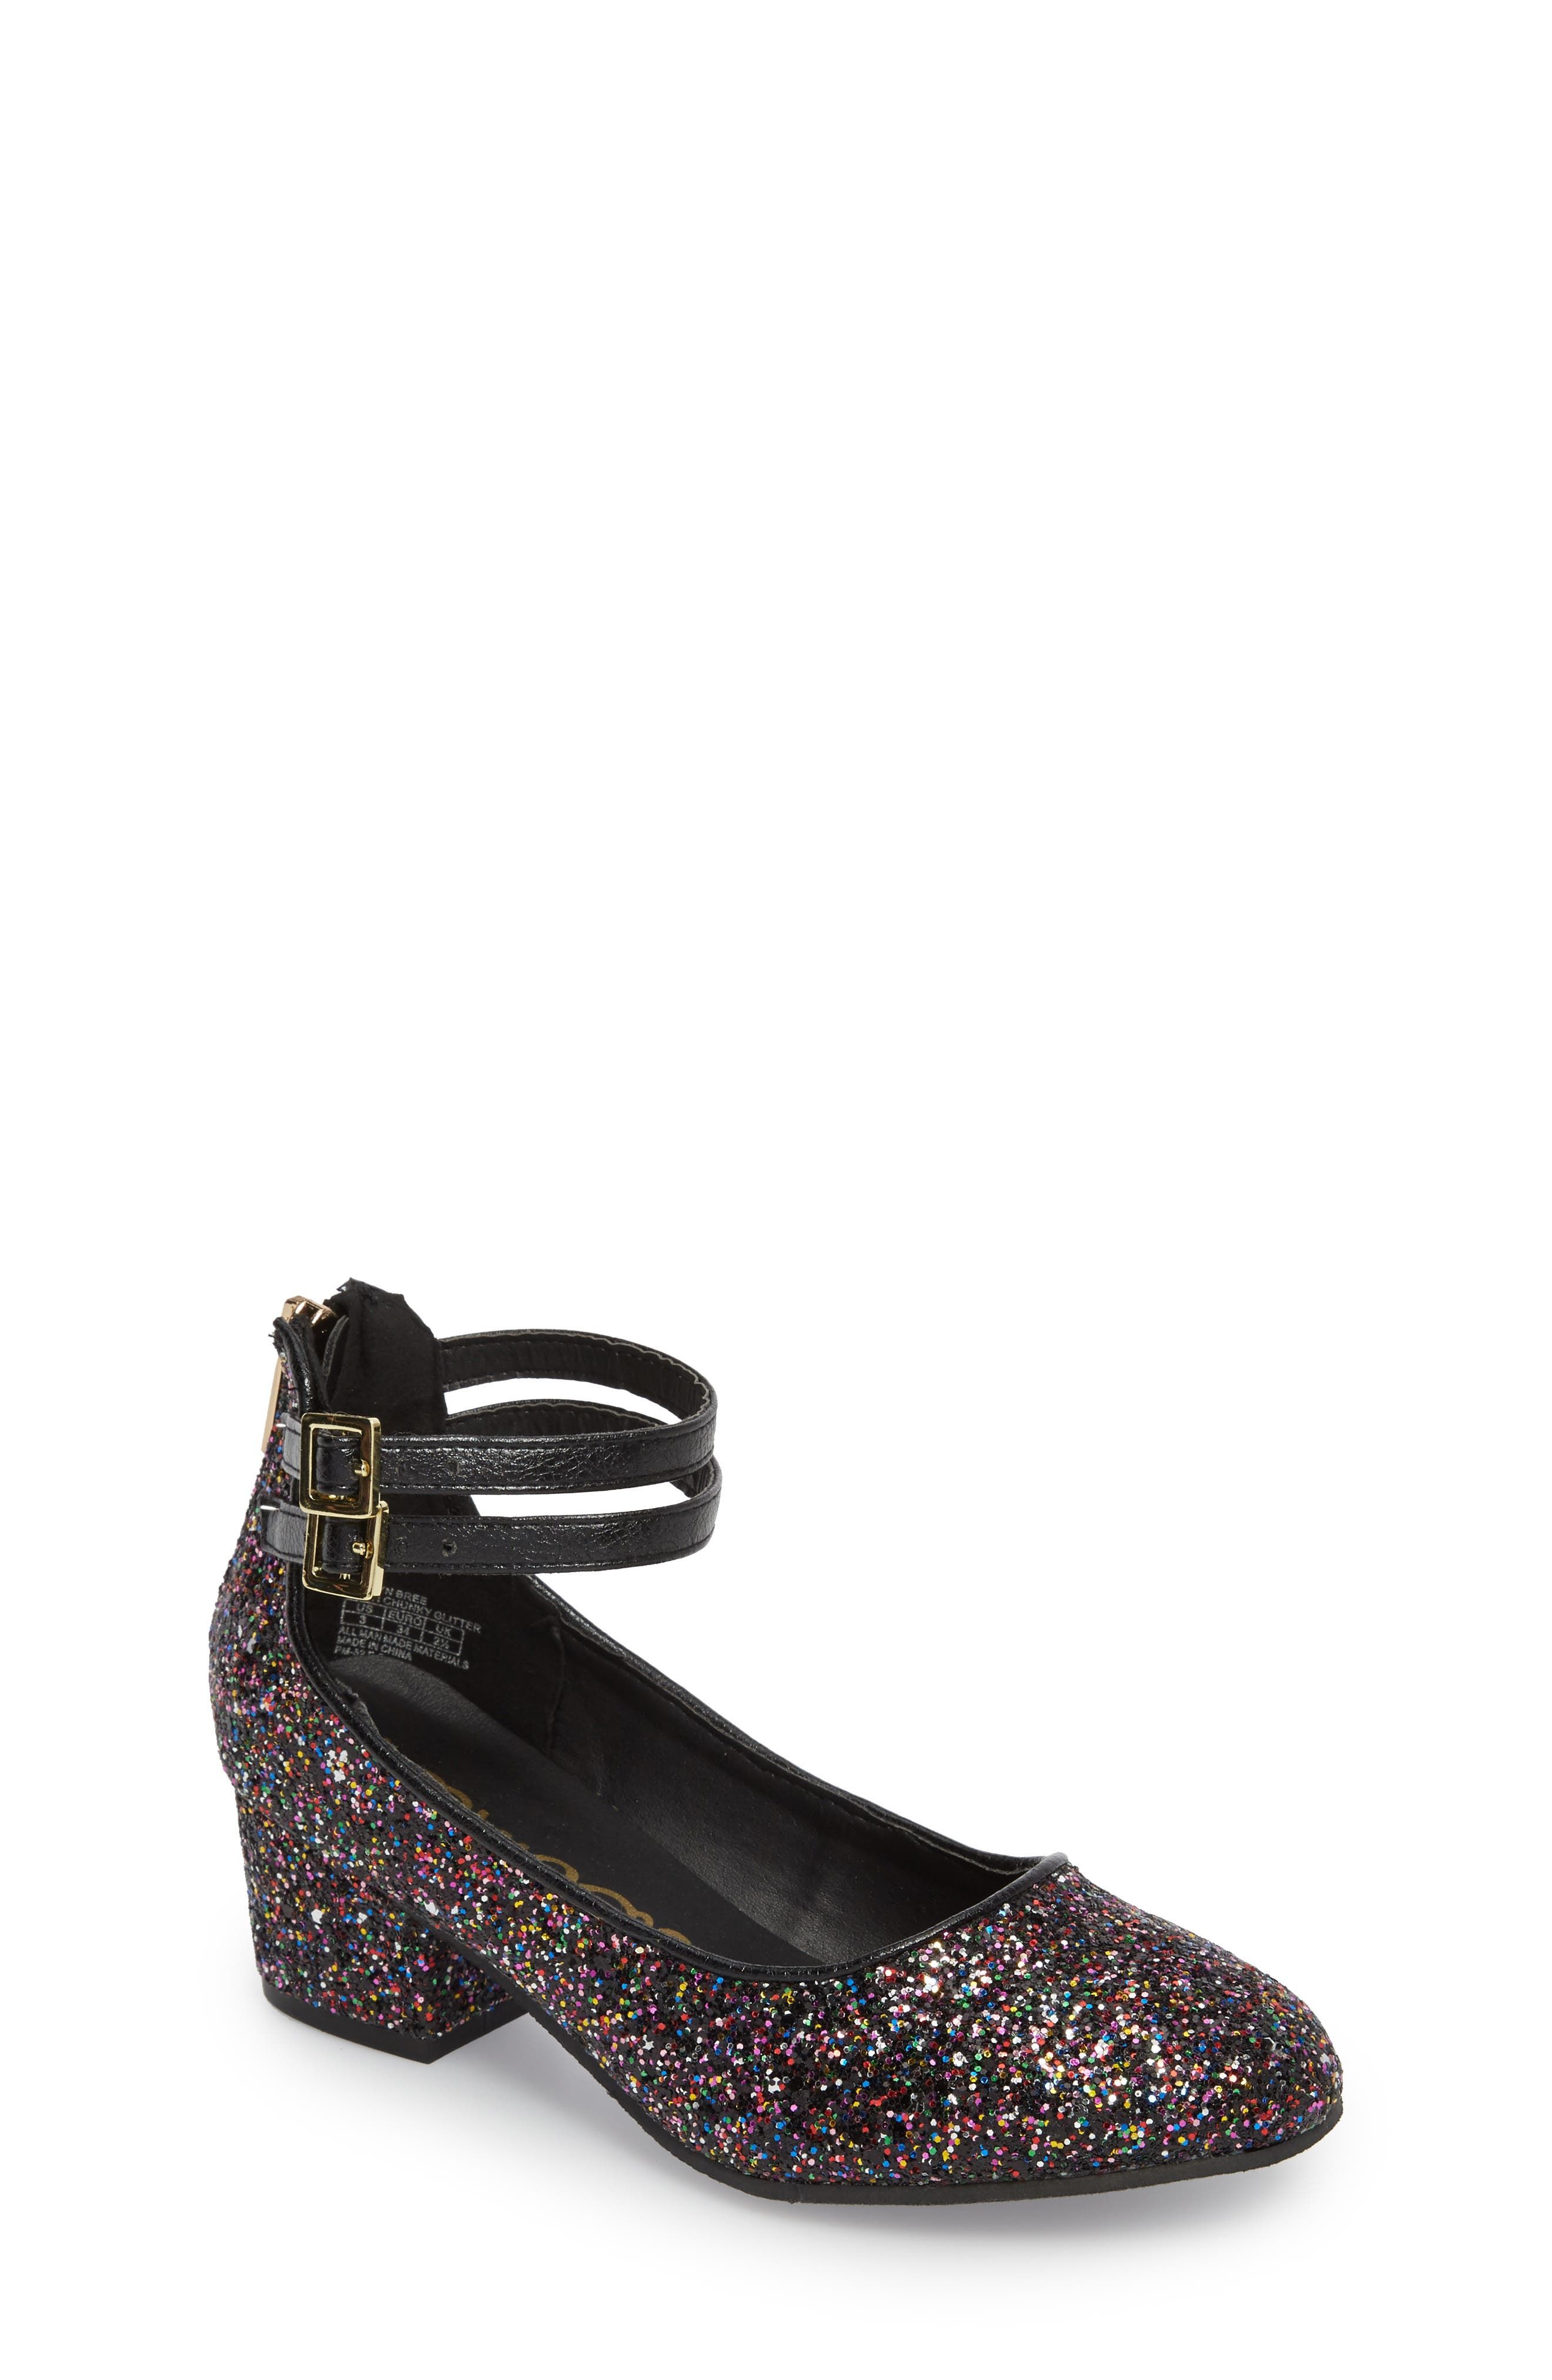 Evelyn Bree Ankle Strap Glitter Pump,                             Main thumbnail 1, color,                             001